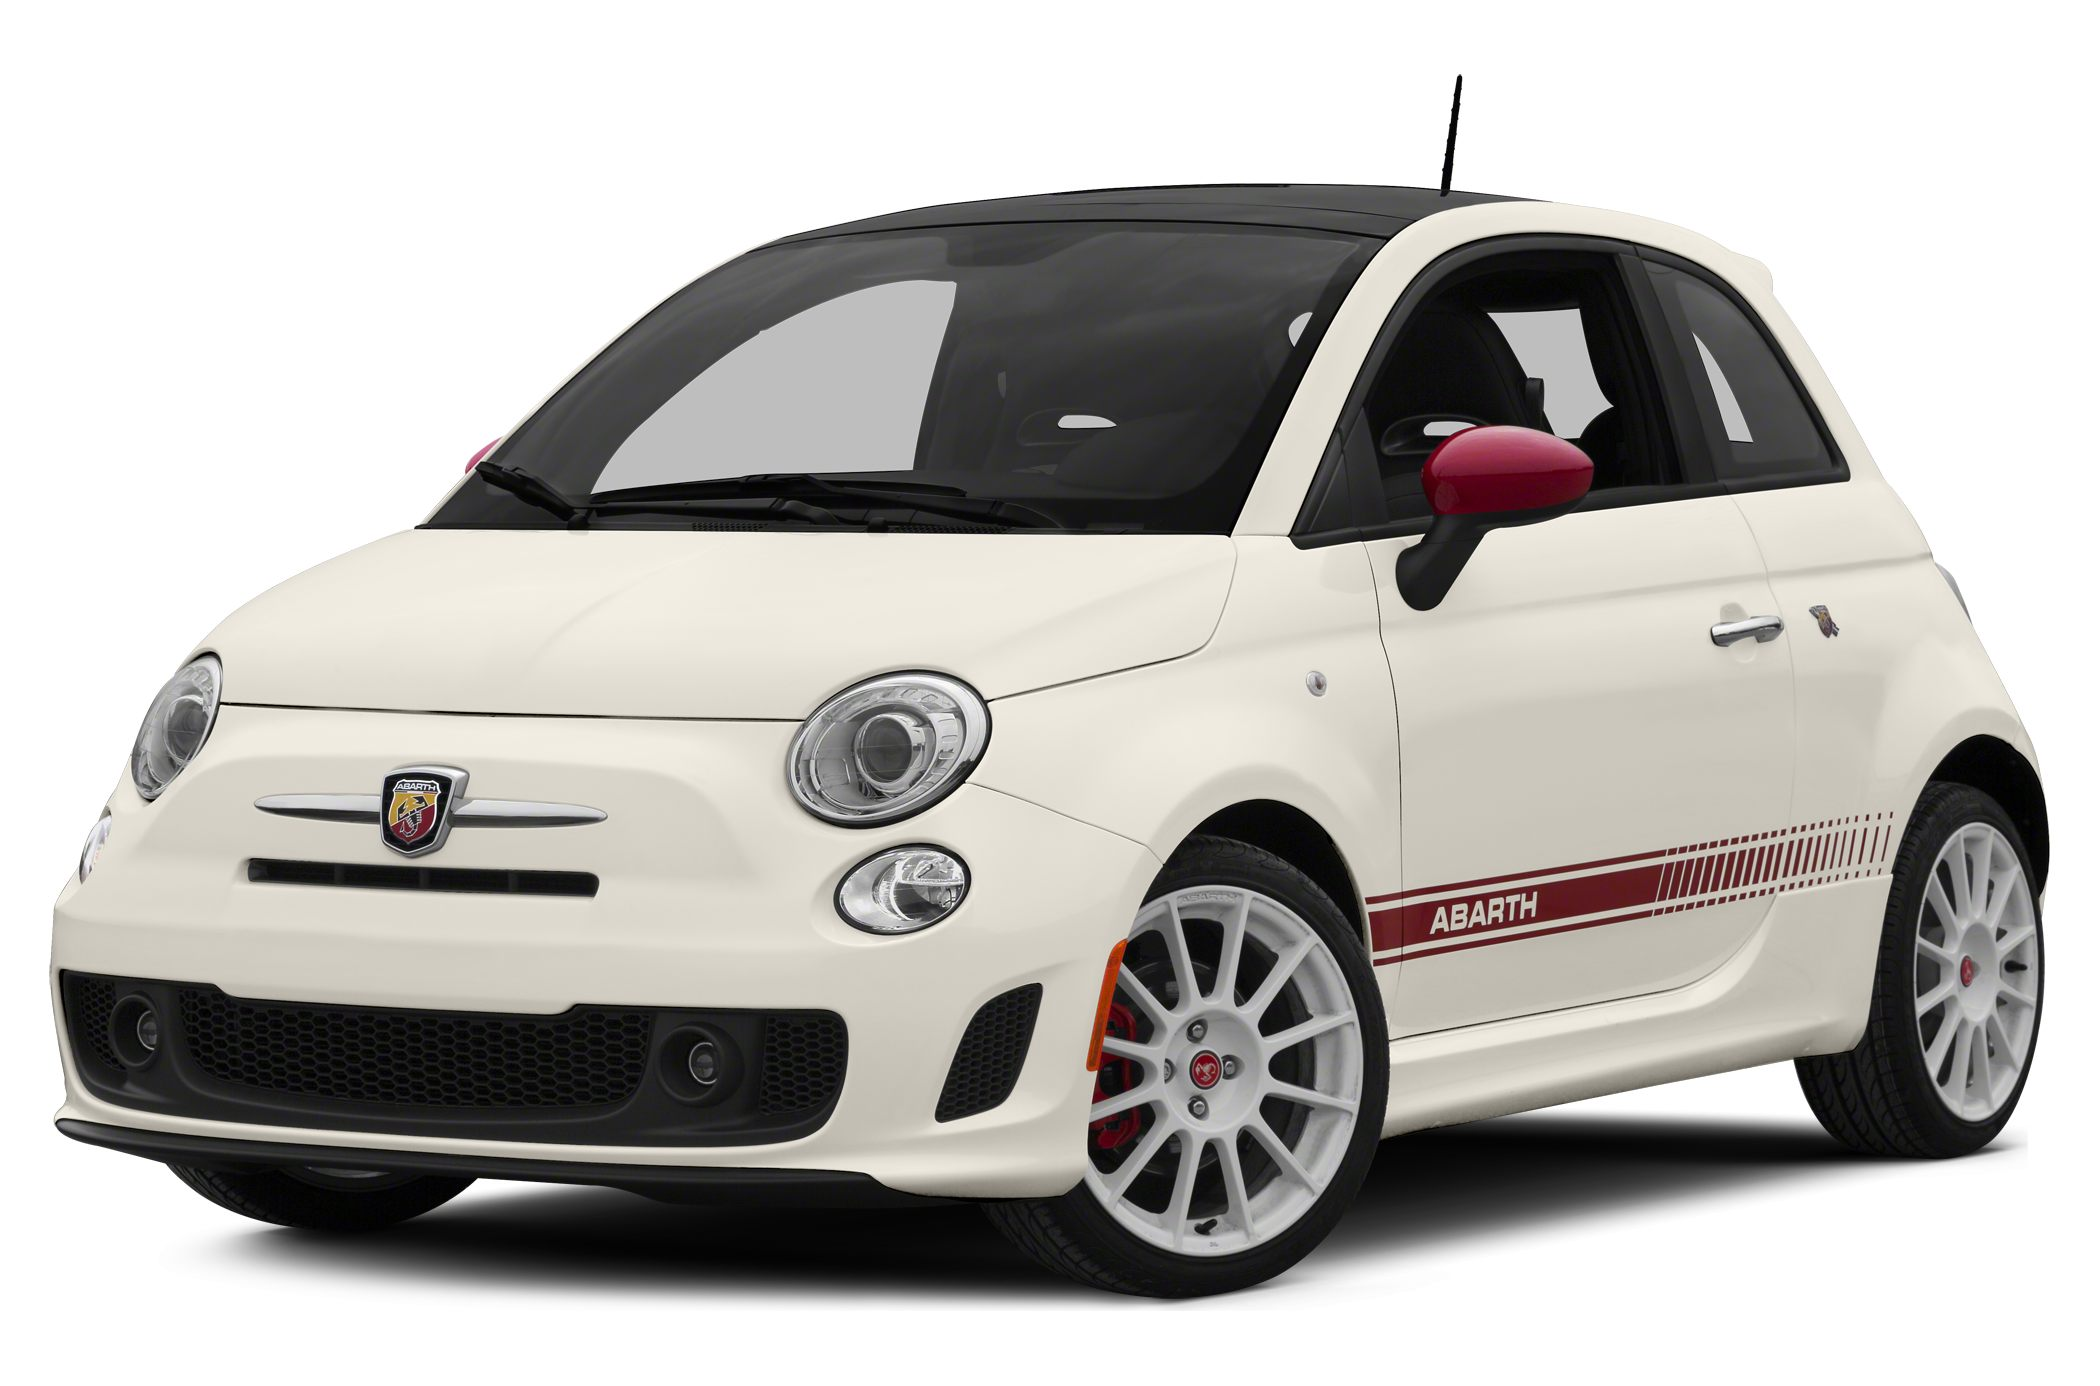 2015 Fiat 500 Abarth Hatchback for sale in Pensacola for $25,020 with 7 miles.